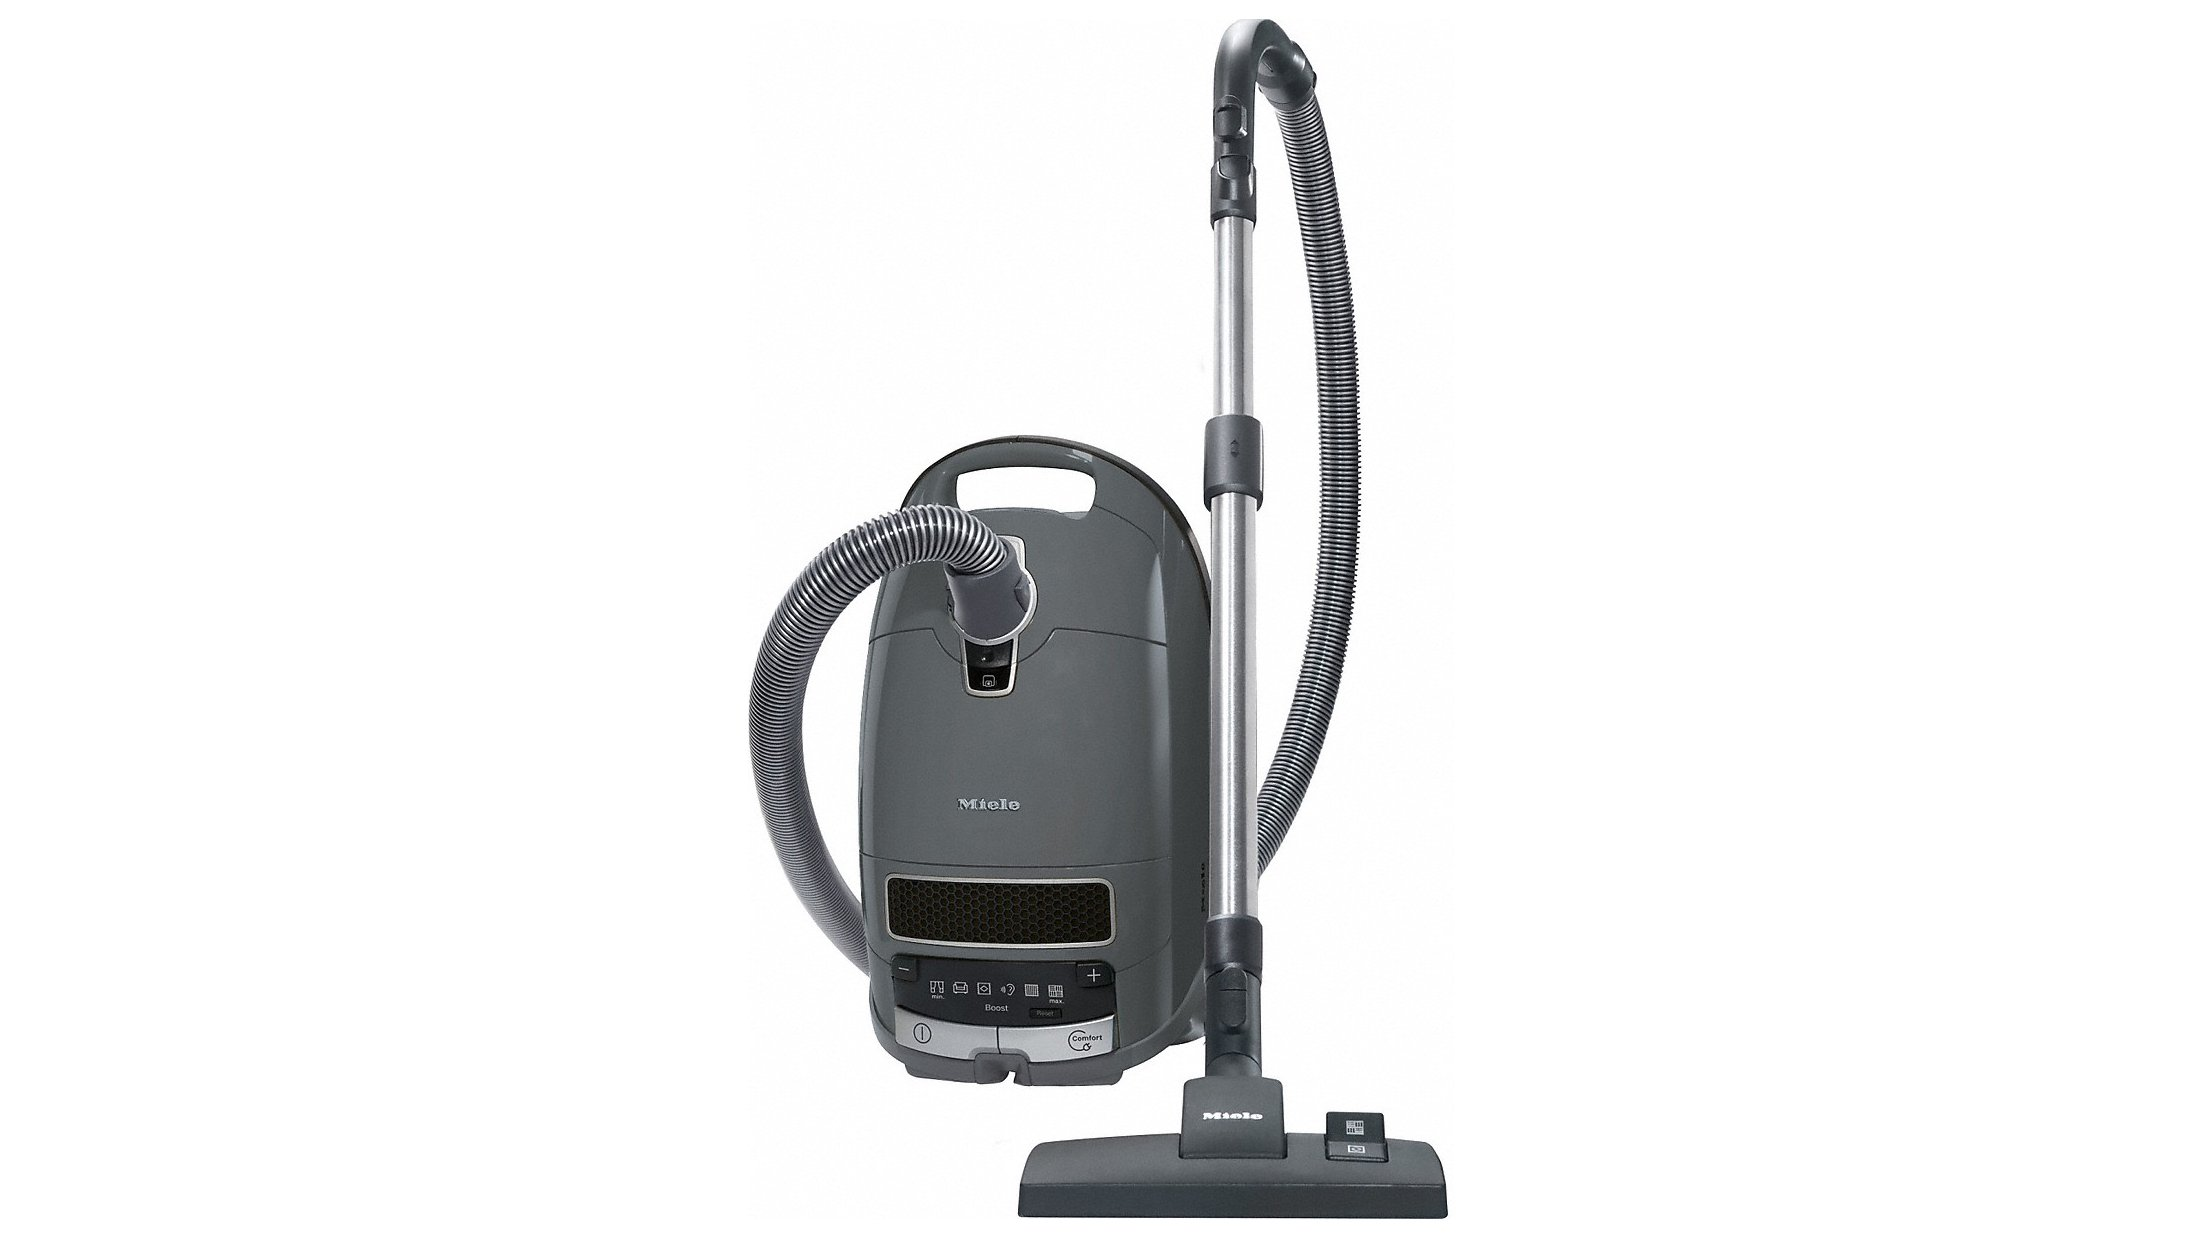 ccb8a7a2fbf Amazon is currently offering the Miele C3 vacuum cleaner for the discounted  price of £240 - not bad for this handy little machine